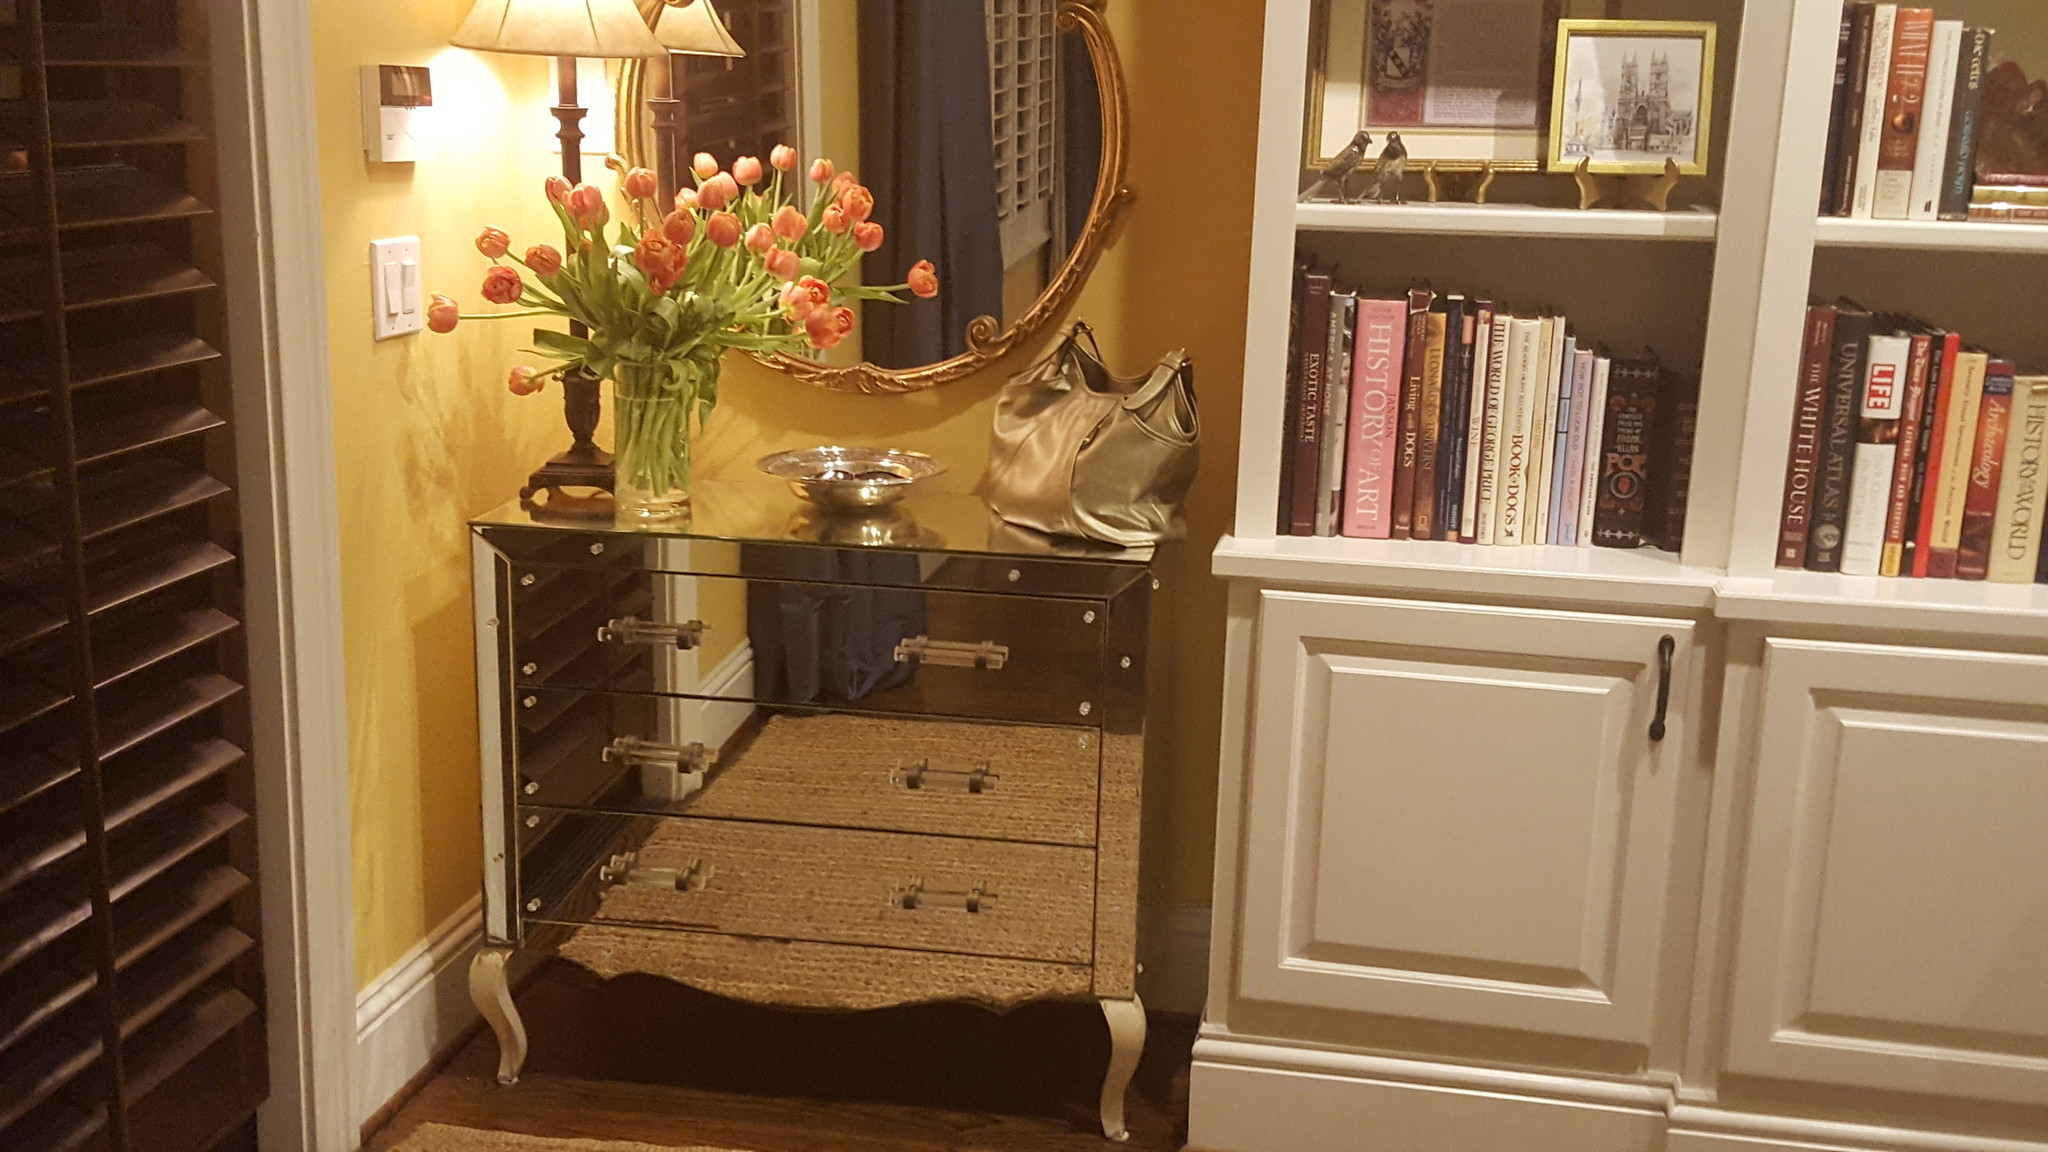 Gently Used And Right At Home: Buying Used Vintage Furniture   Orlando  Sentinel